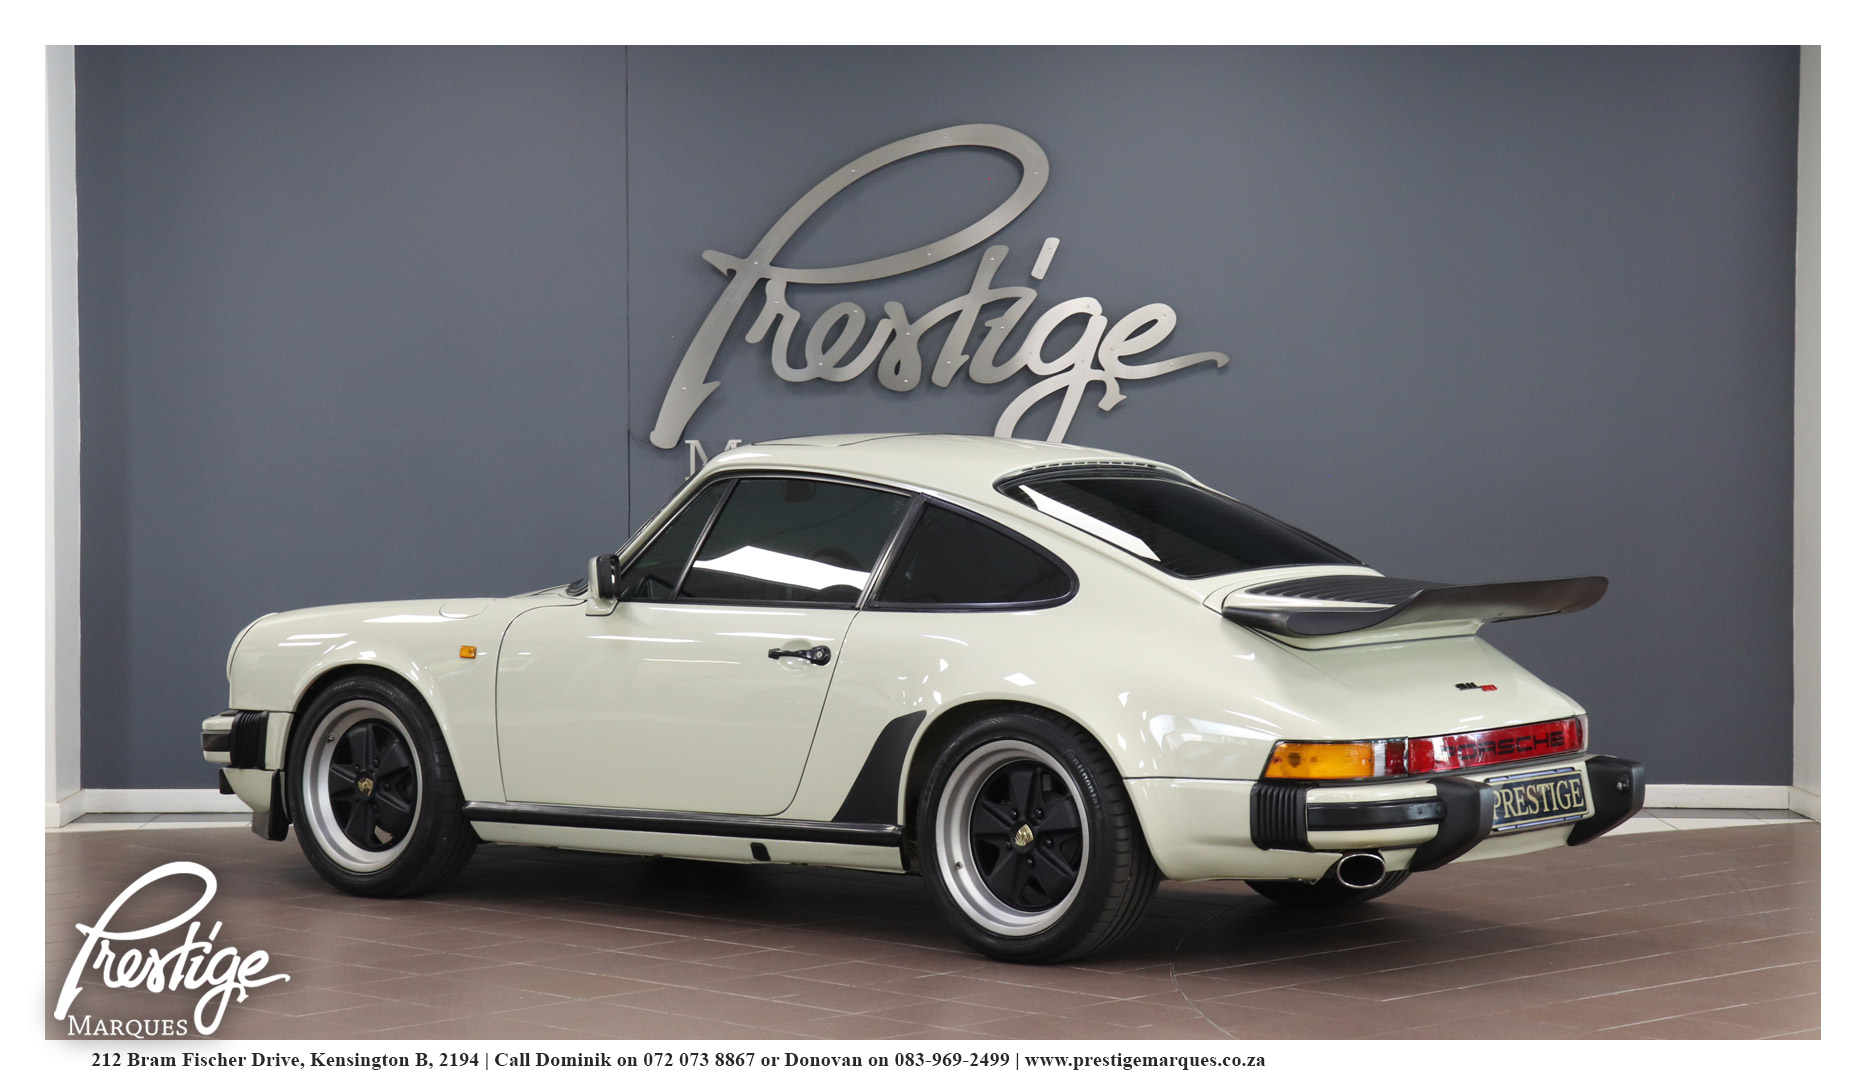 1982-Porsche-911-Carrera-20-Year-Anniversary-Tribute-Build-Prestige-Marques-Randburg-Sandton-5